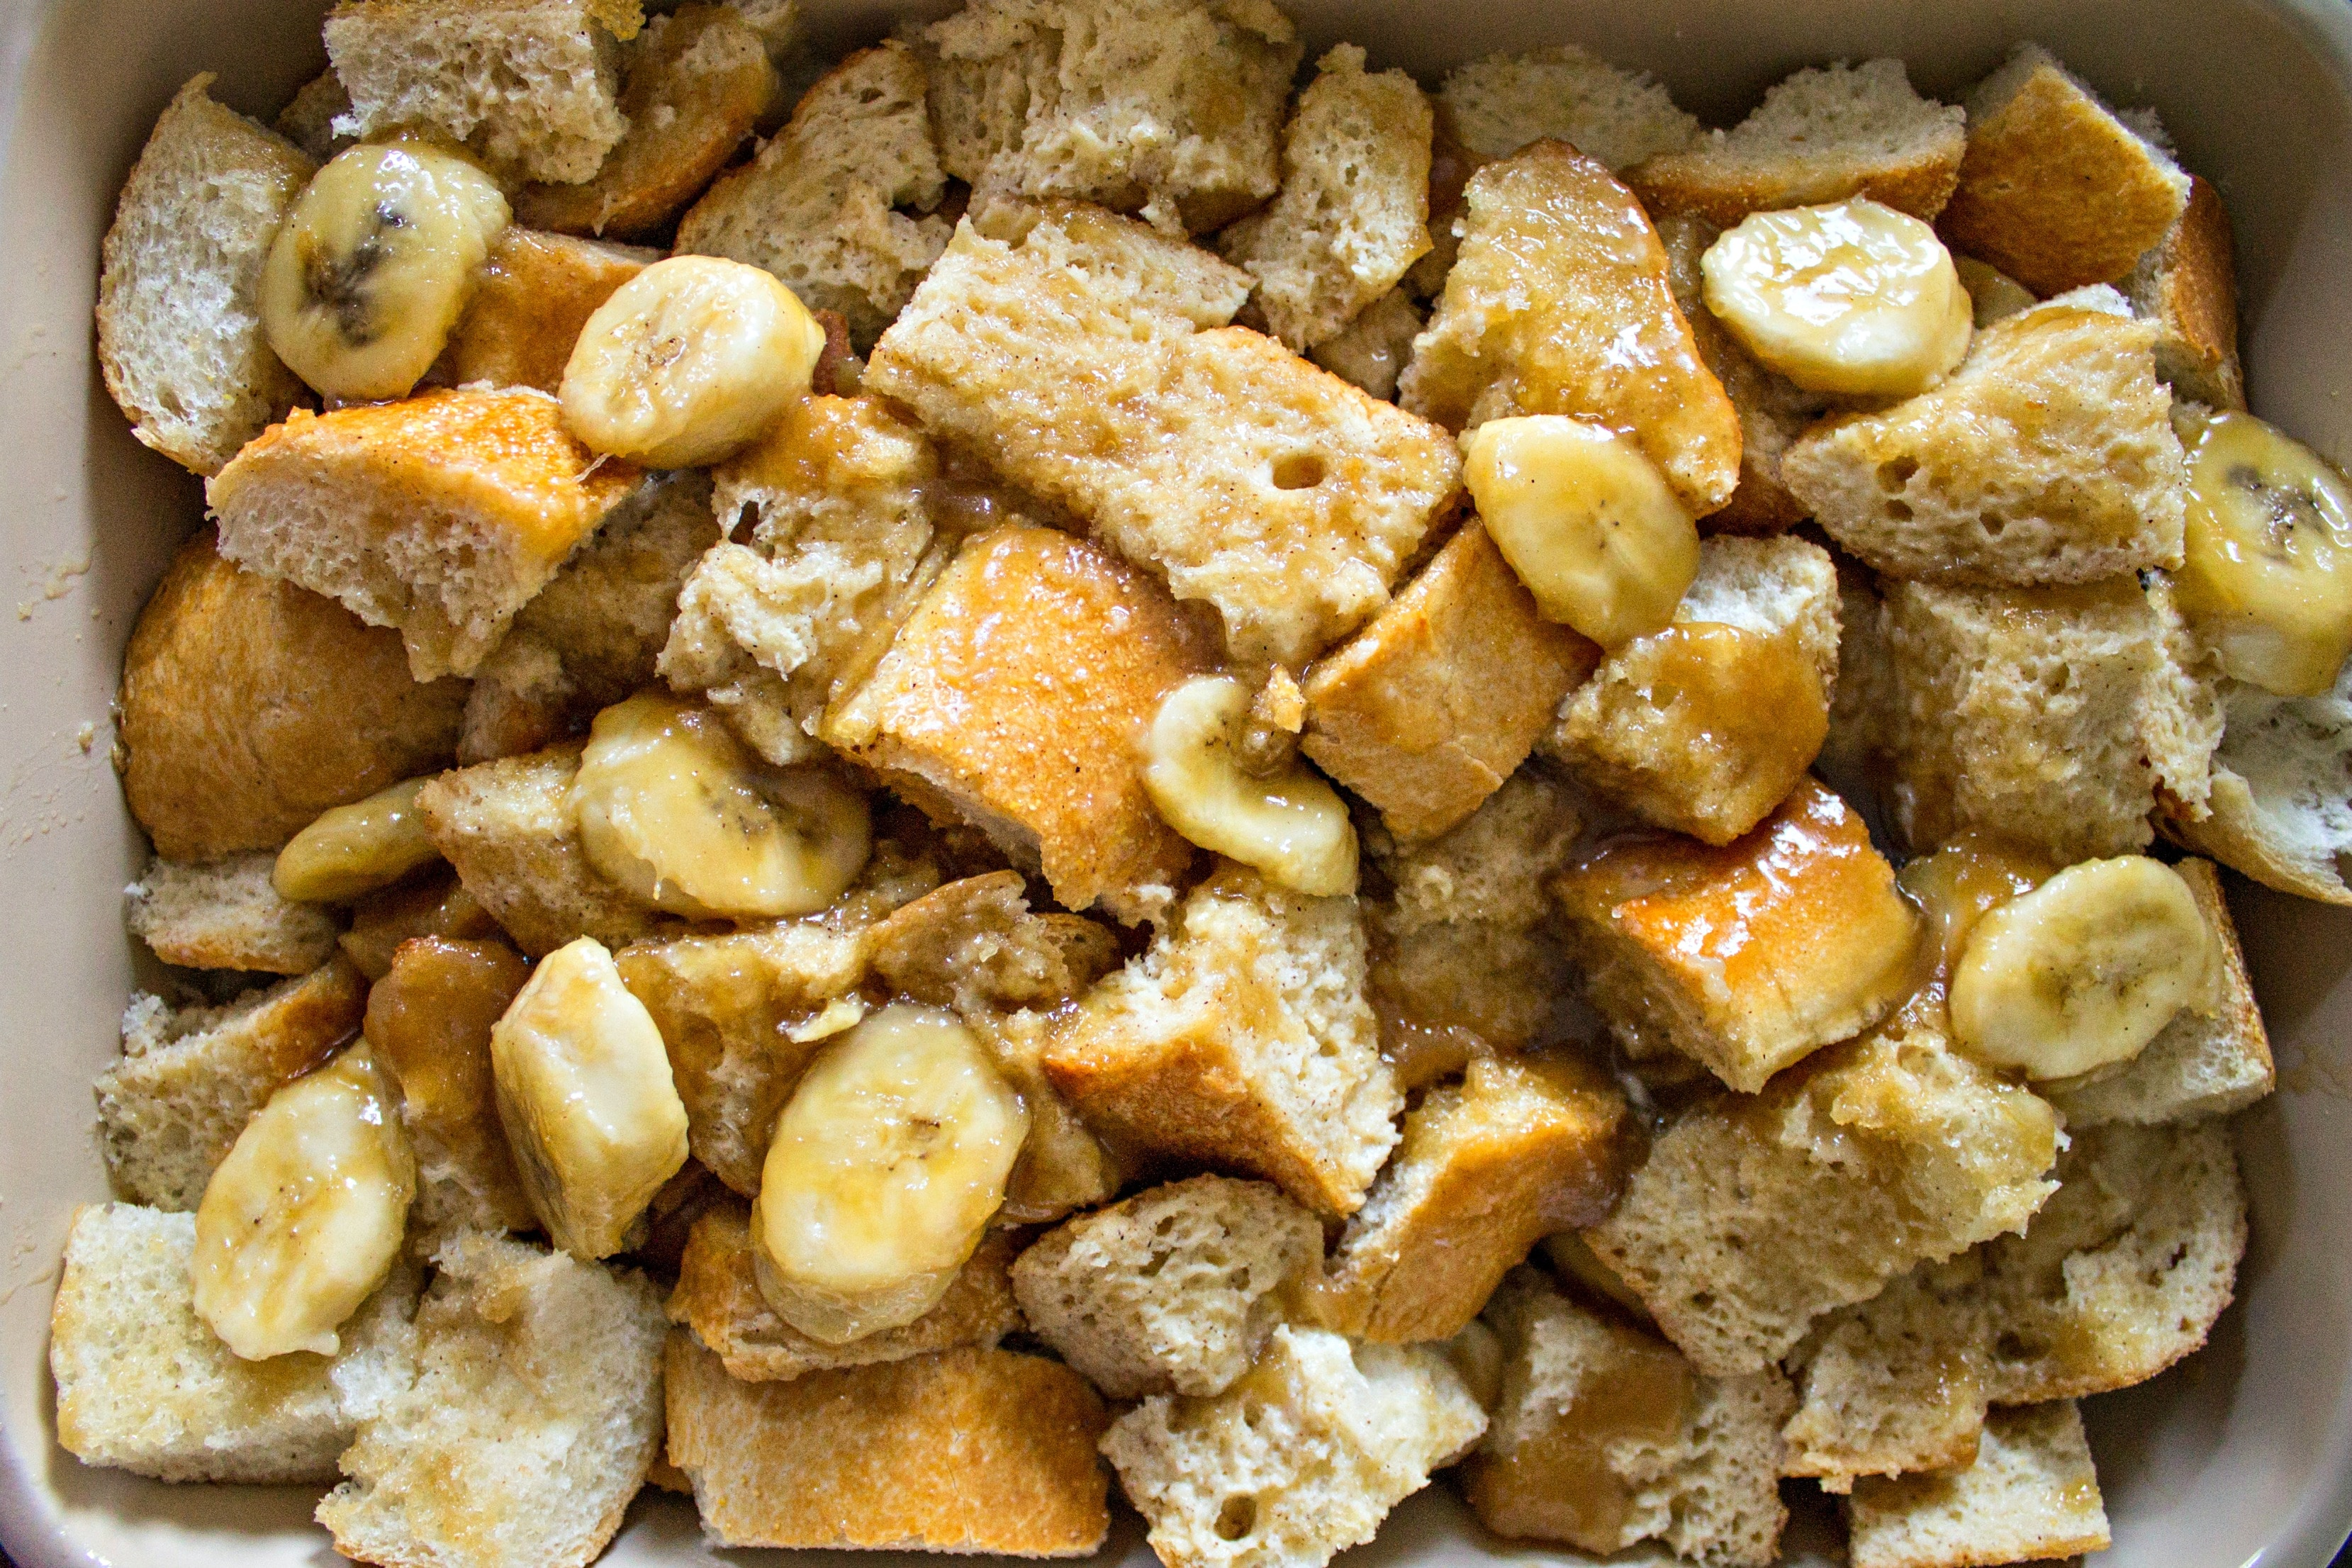 French toast pieces and bananas in a casserole dish